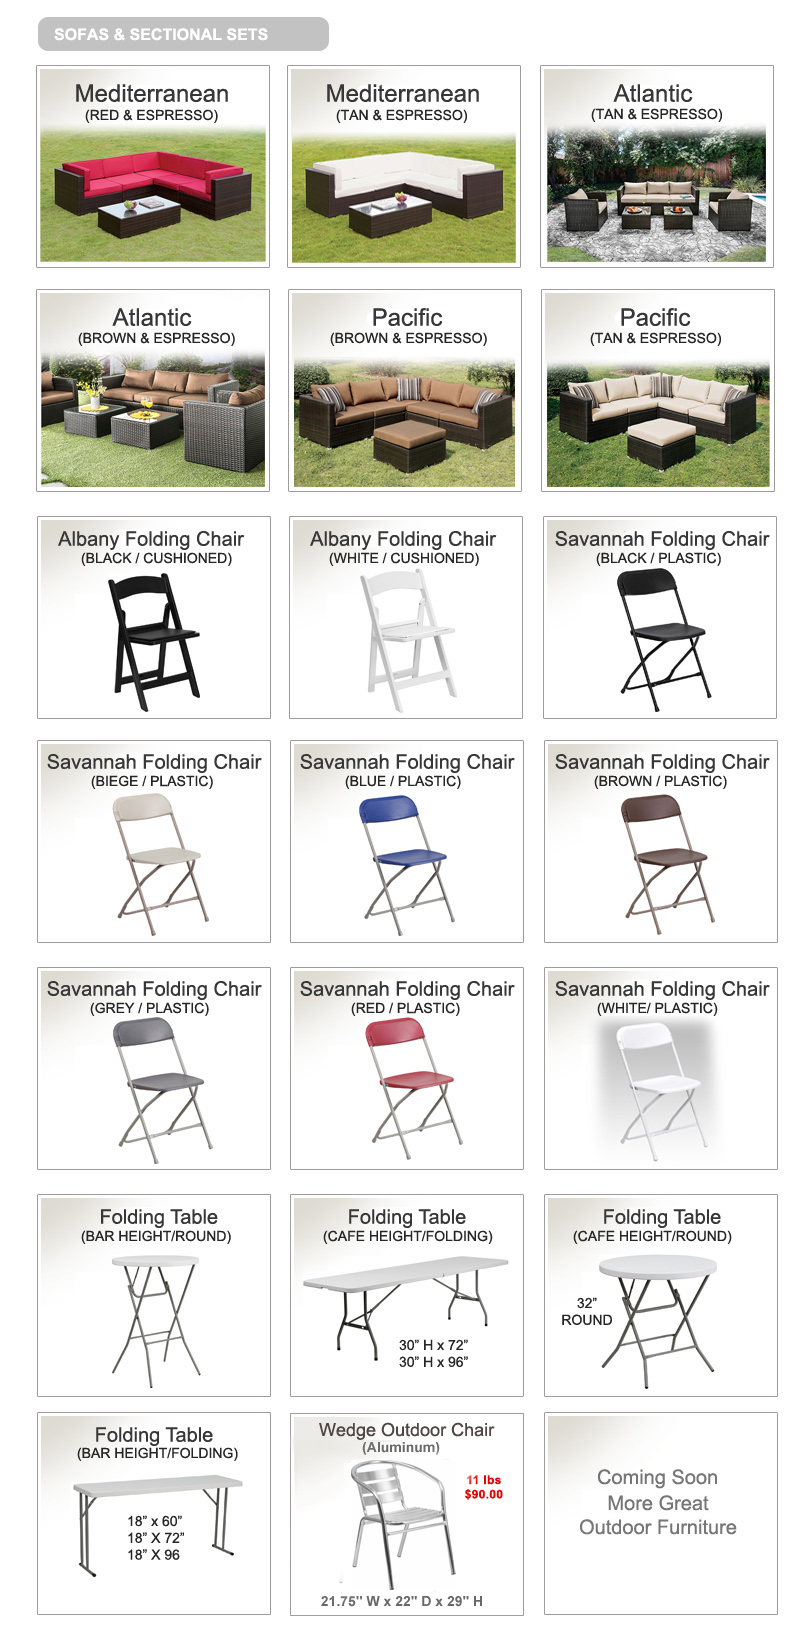 office furniture trade shows. beautiful shows outdoor furniture  trade show furniture event exhibit  convention office furniture and more today 4703774563 in shows